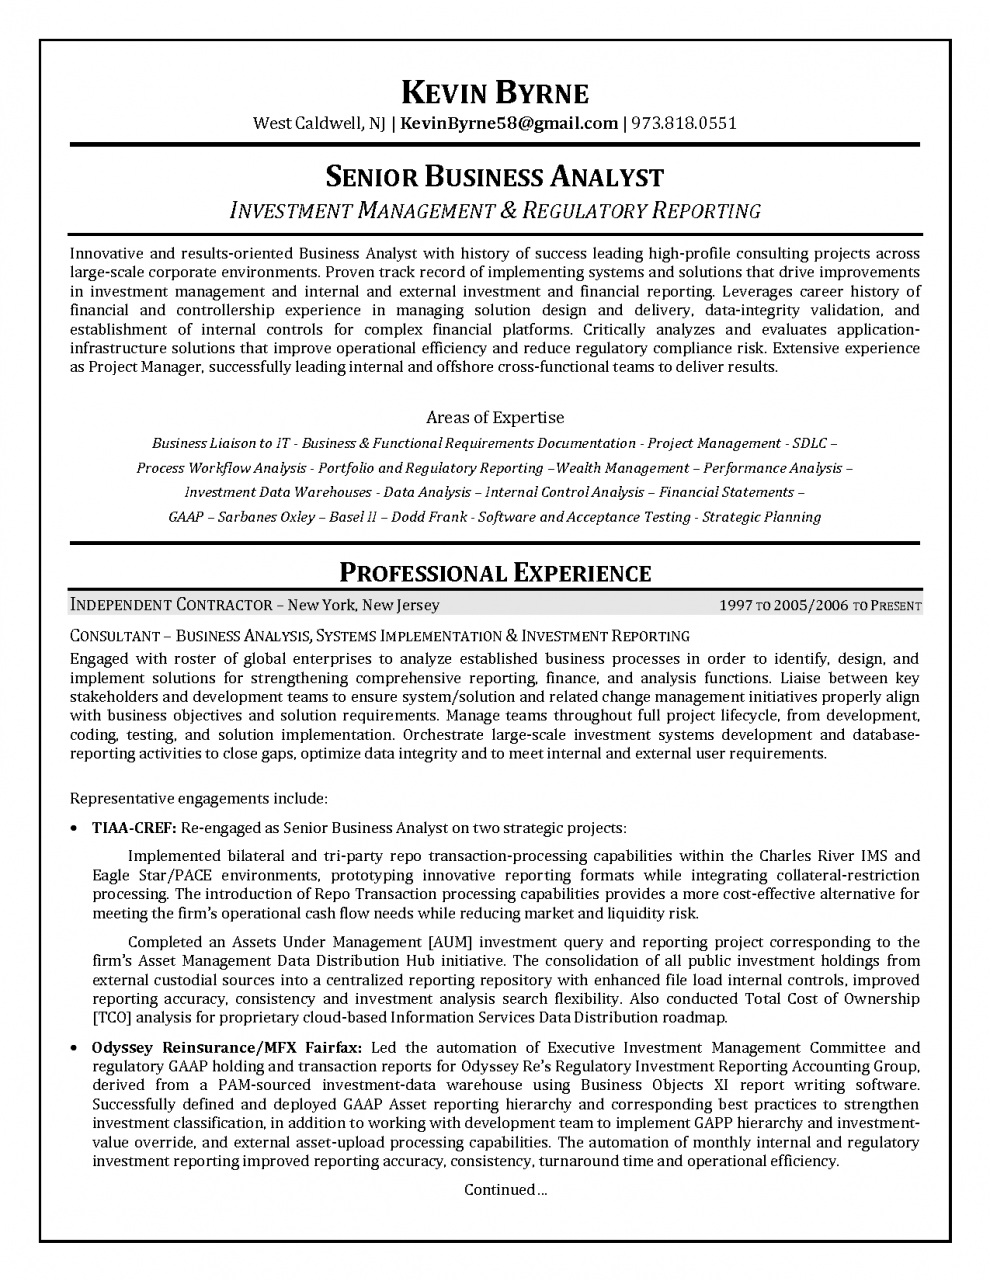 resume senior business analyst resume format business analyst senior resume workbloom 135933271 sample resume for. Resume Example. Resume CV Cover Letter